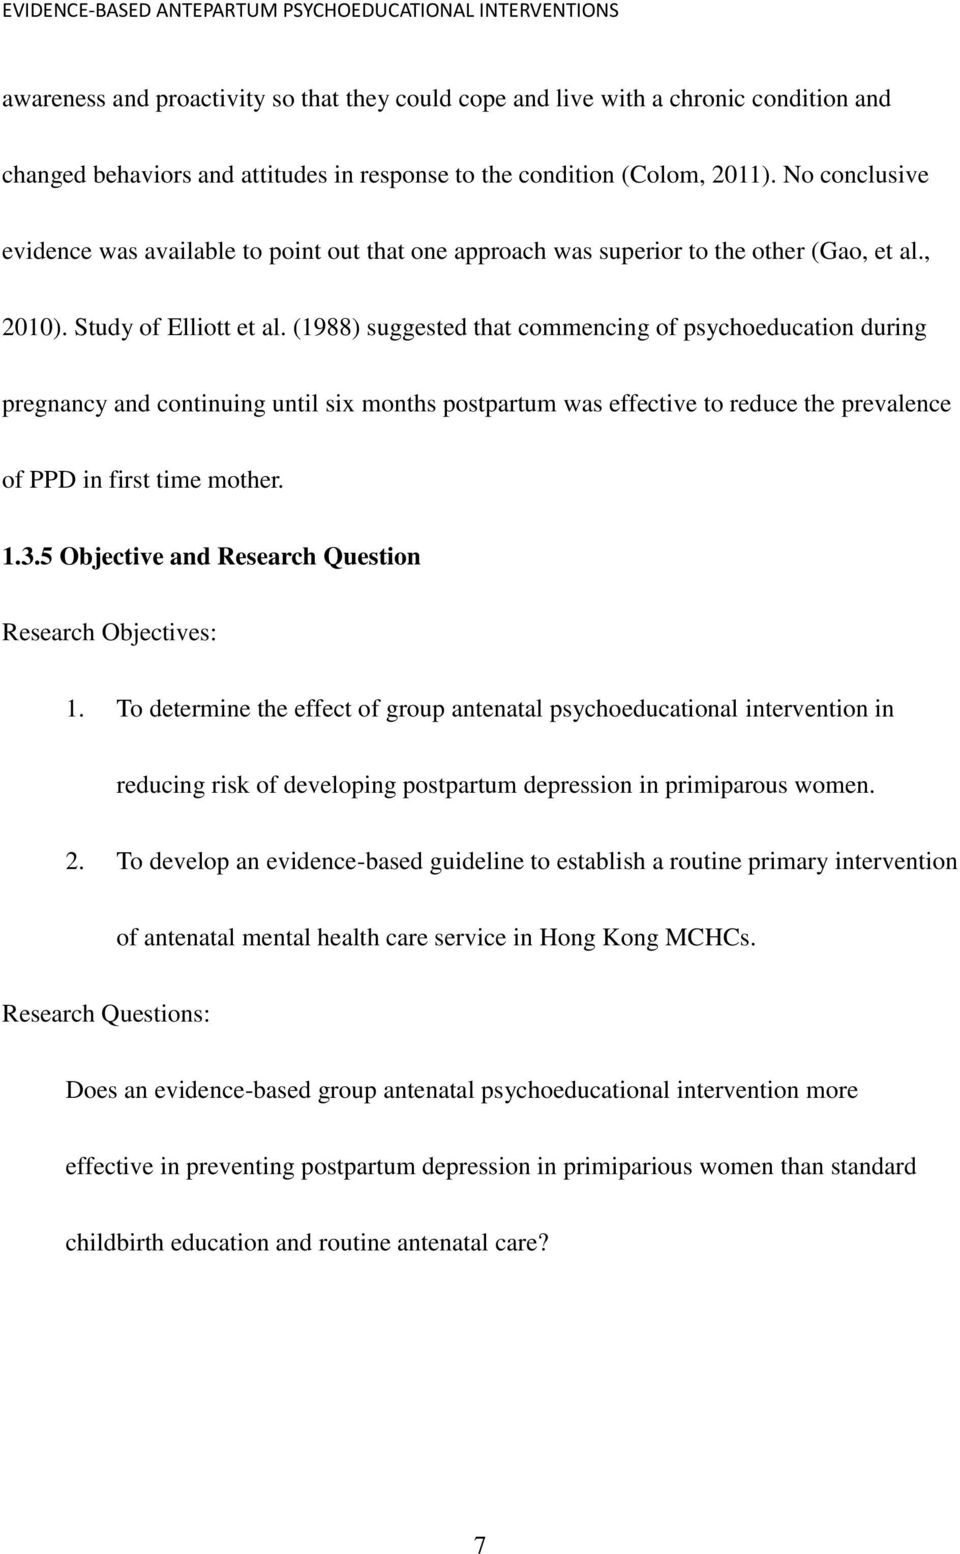 (1988) suggested that commencing of psychoeducation during pregnancy and continuing until six months postpartum was effective to reduce the prevalence of PPD in first time mother. 1.3.